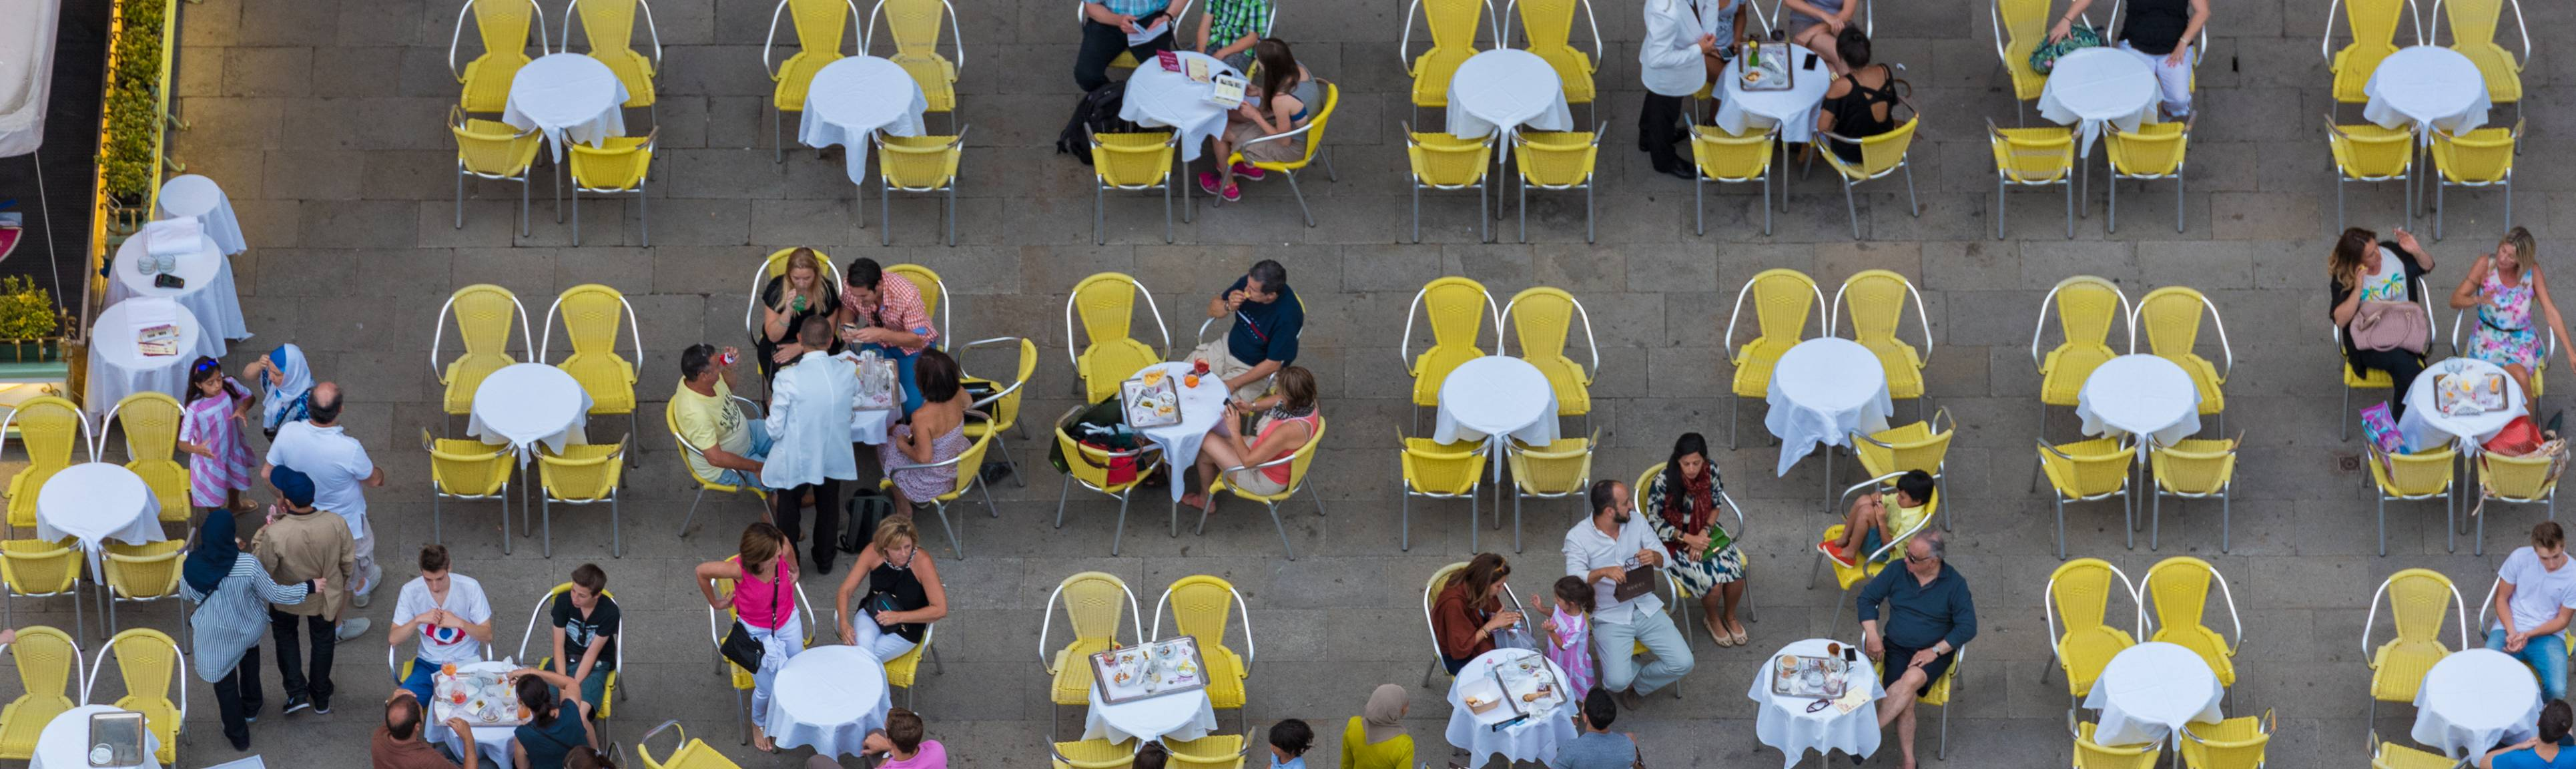 Bird's eye view of rows of seated diners in Rome, Italy